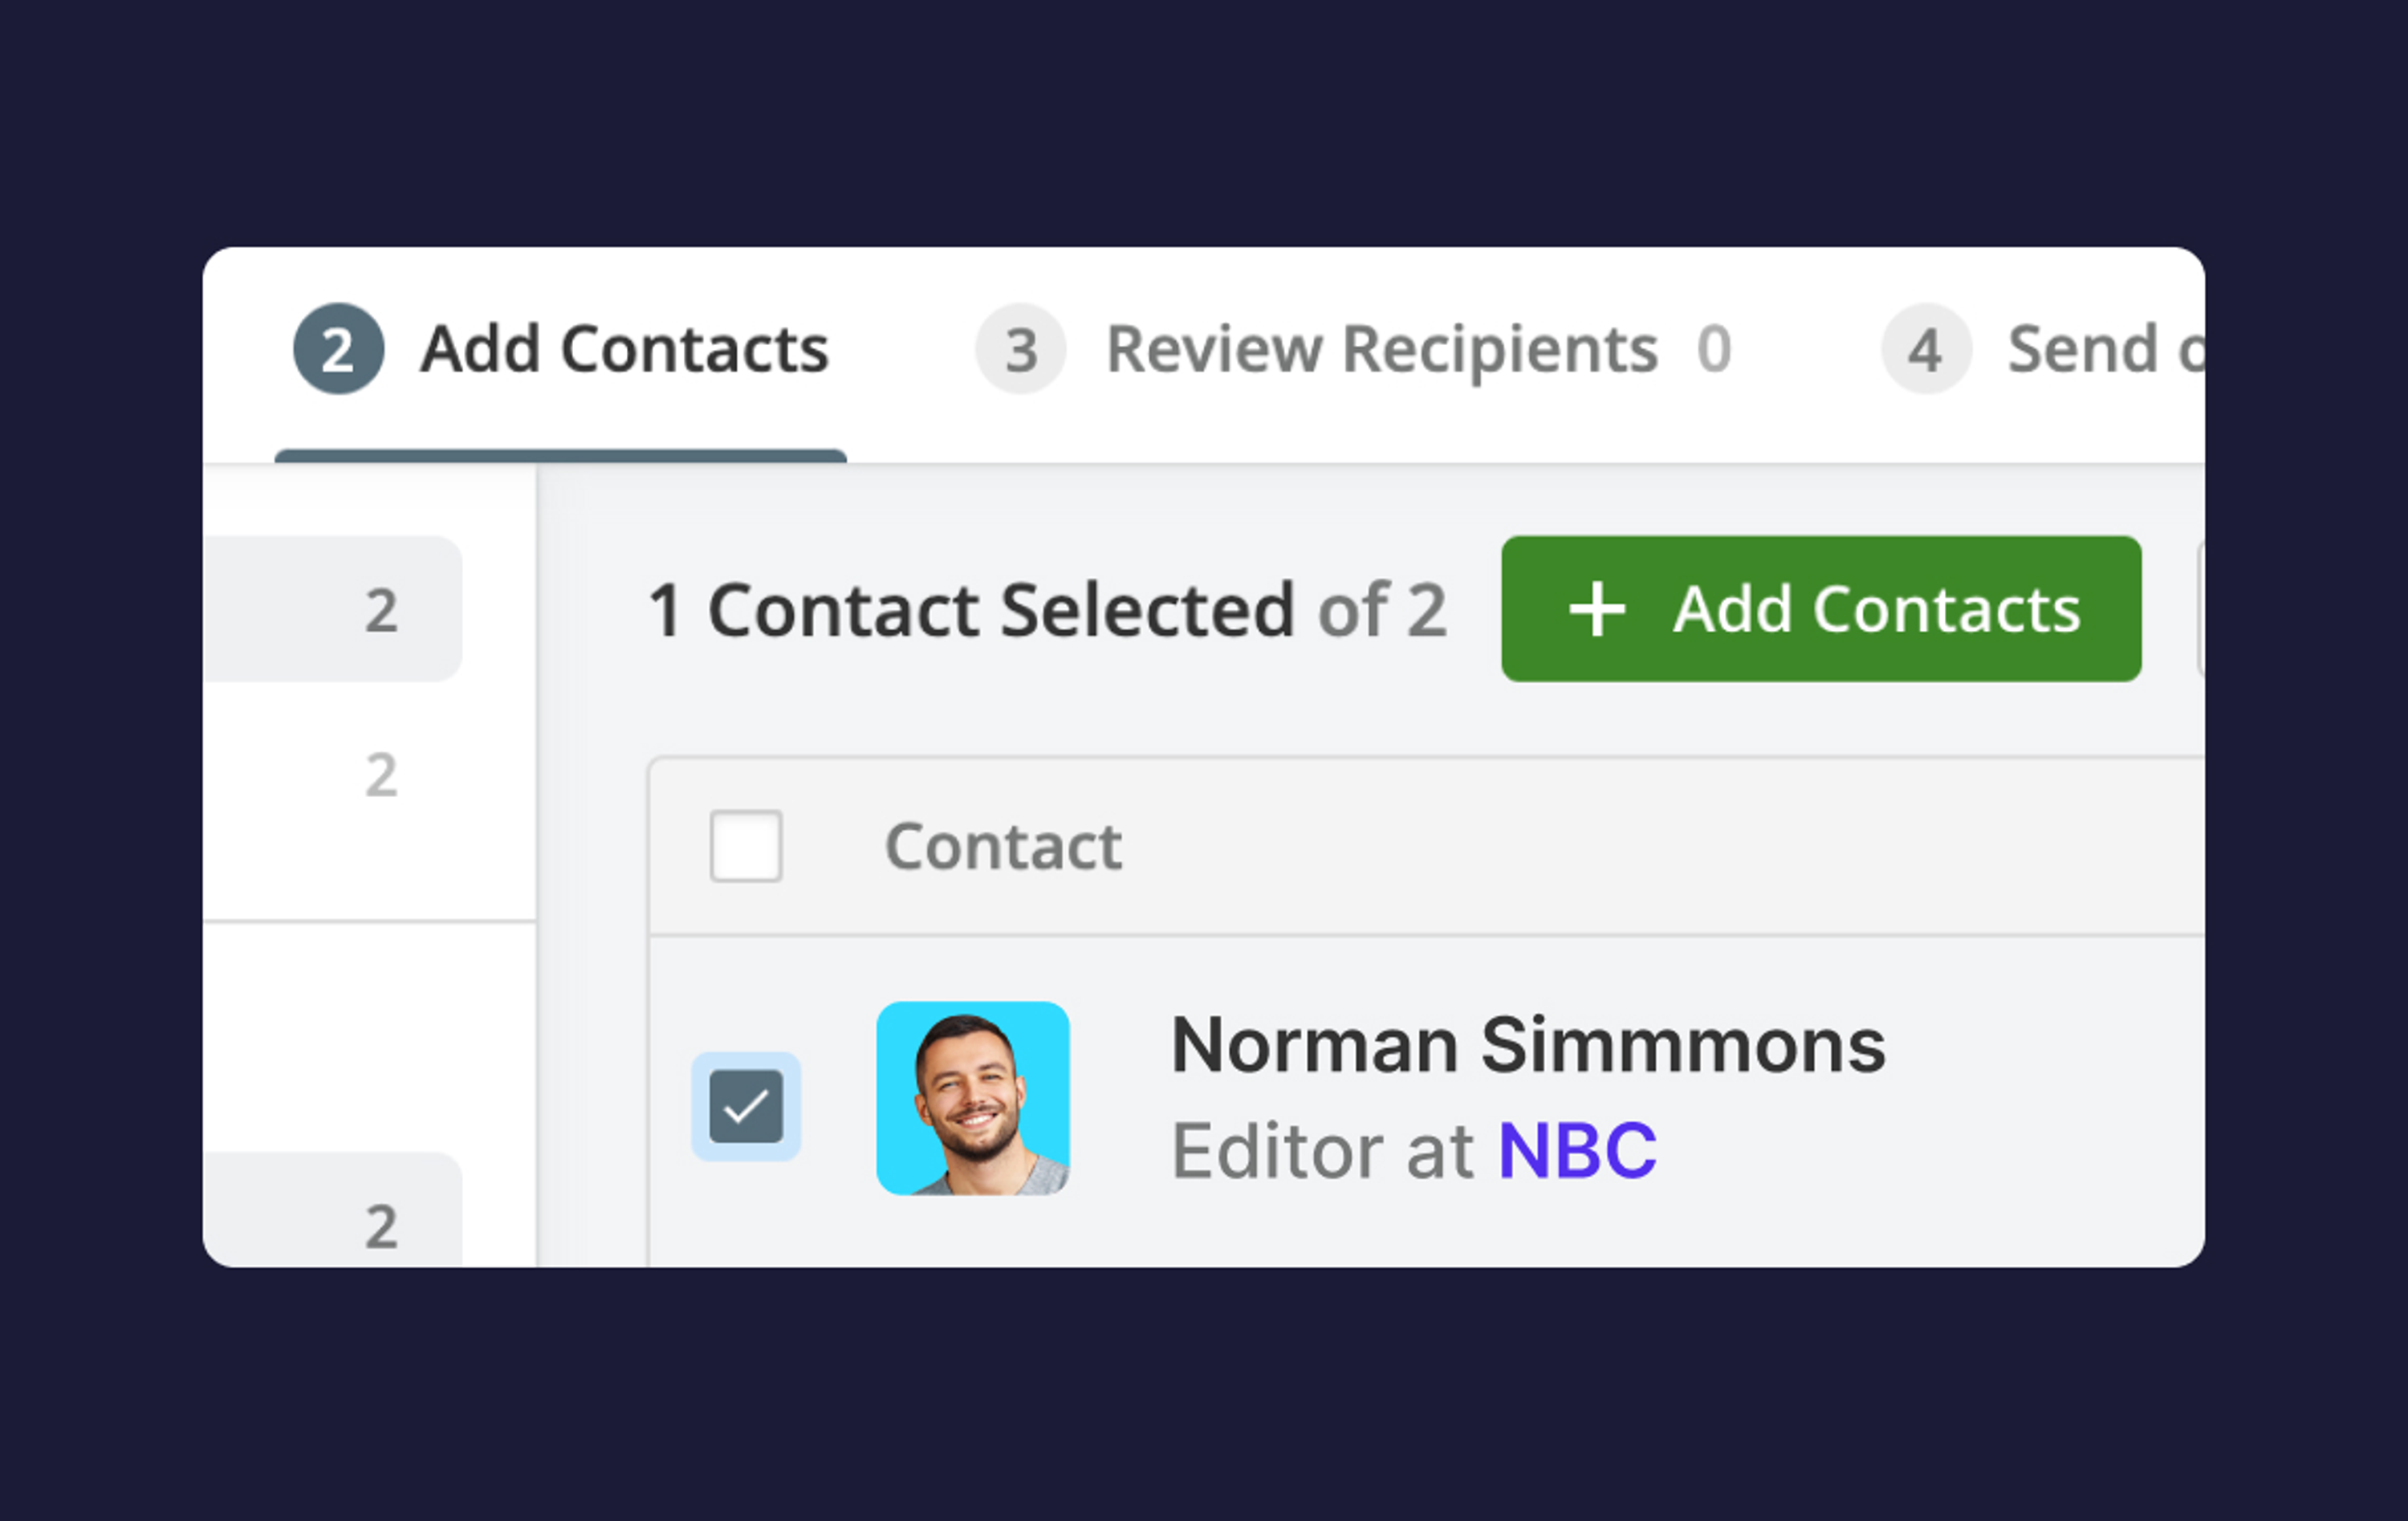 Adding contacts & reviewing recipients